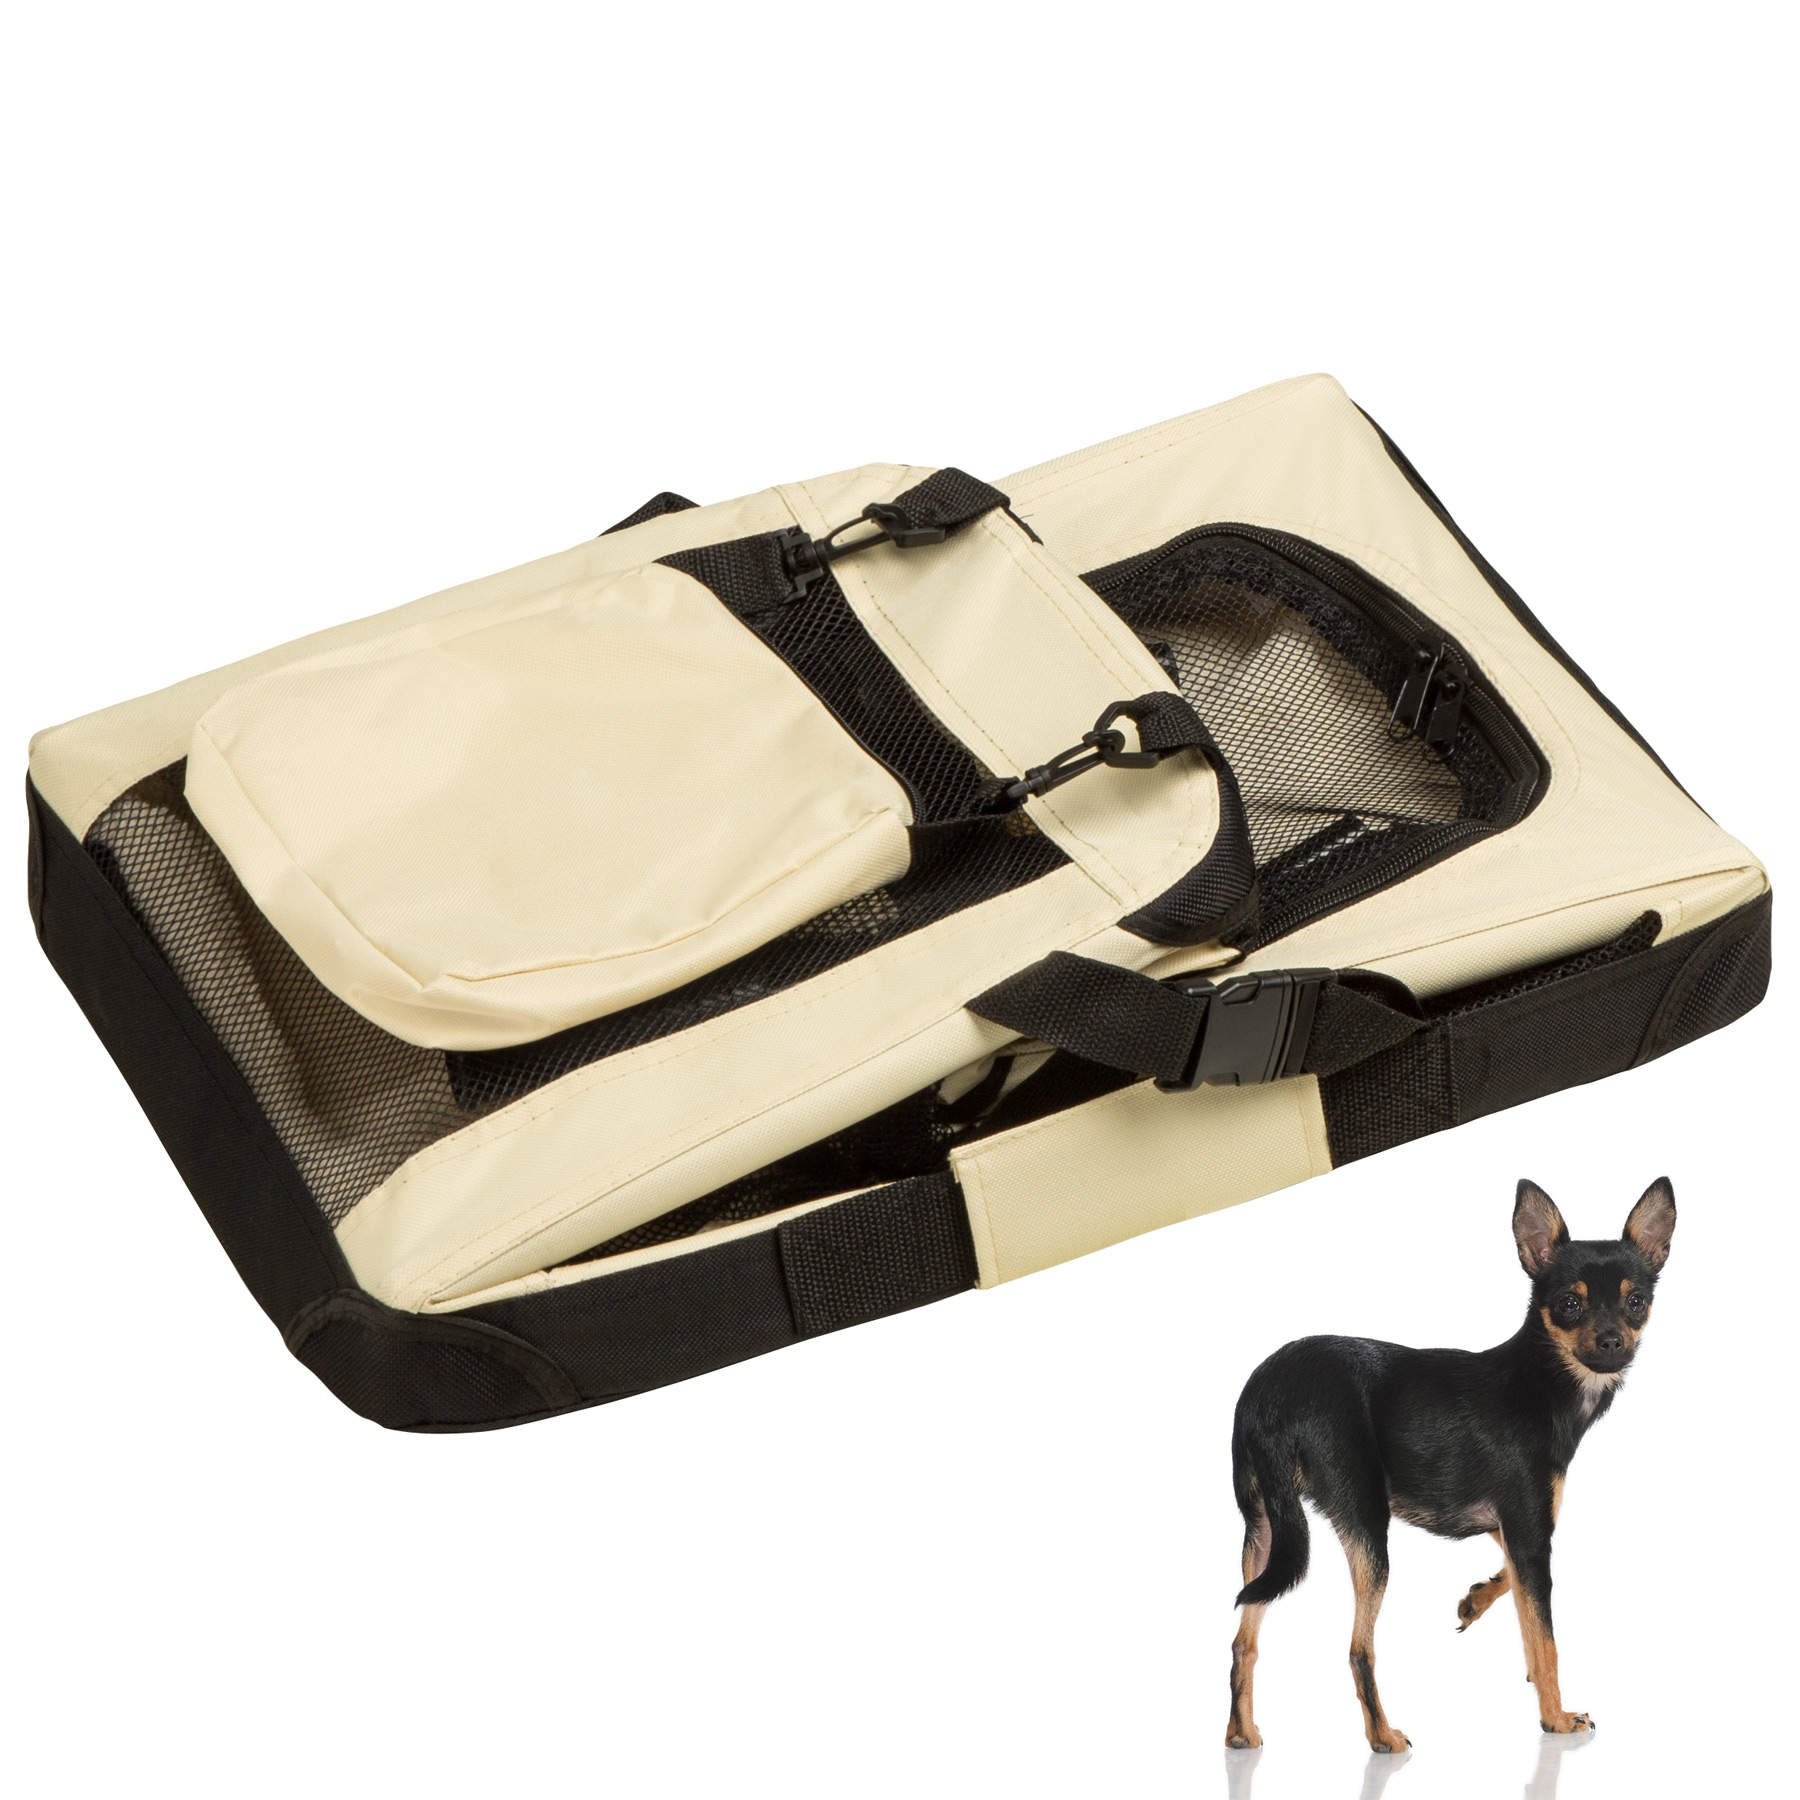 cage sac box panier caisse de transport pour chien chat. Black Bedroom Furniture Sets. Home Design Ideas